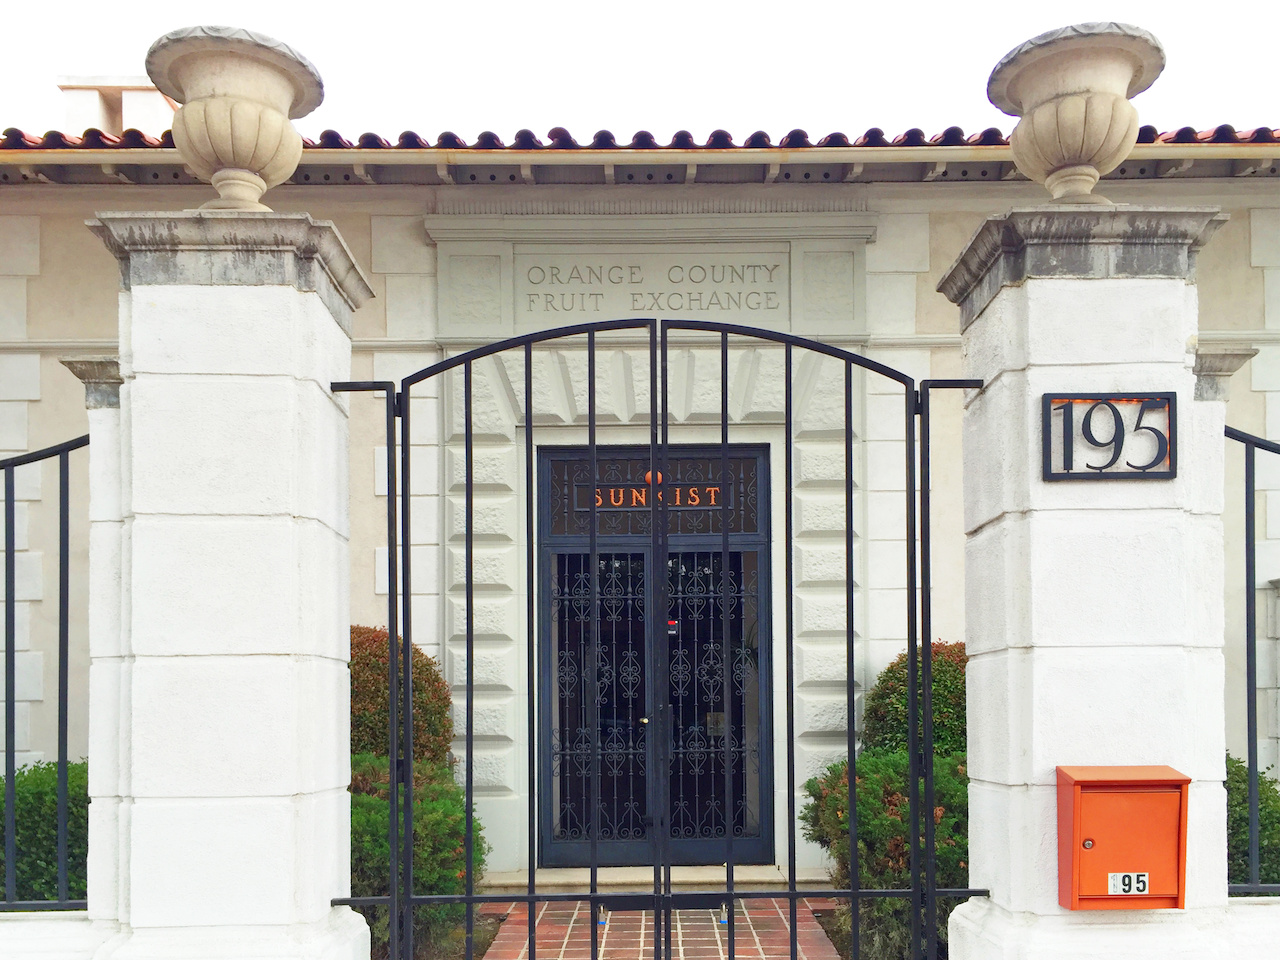 The gorgeous old Orange County Fruit Exchange at 195 Glassell Street in Old Towne Orange is now the Exchange Art Gallery, which is generally open from noon to 5:00 p.m. on Friday through Sunday, if there is an art show. If the gate is open, the gallery is open!